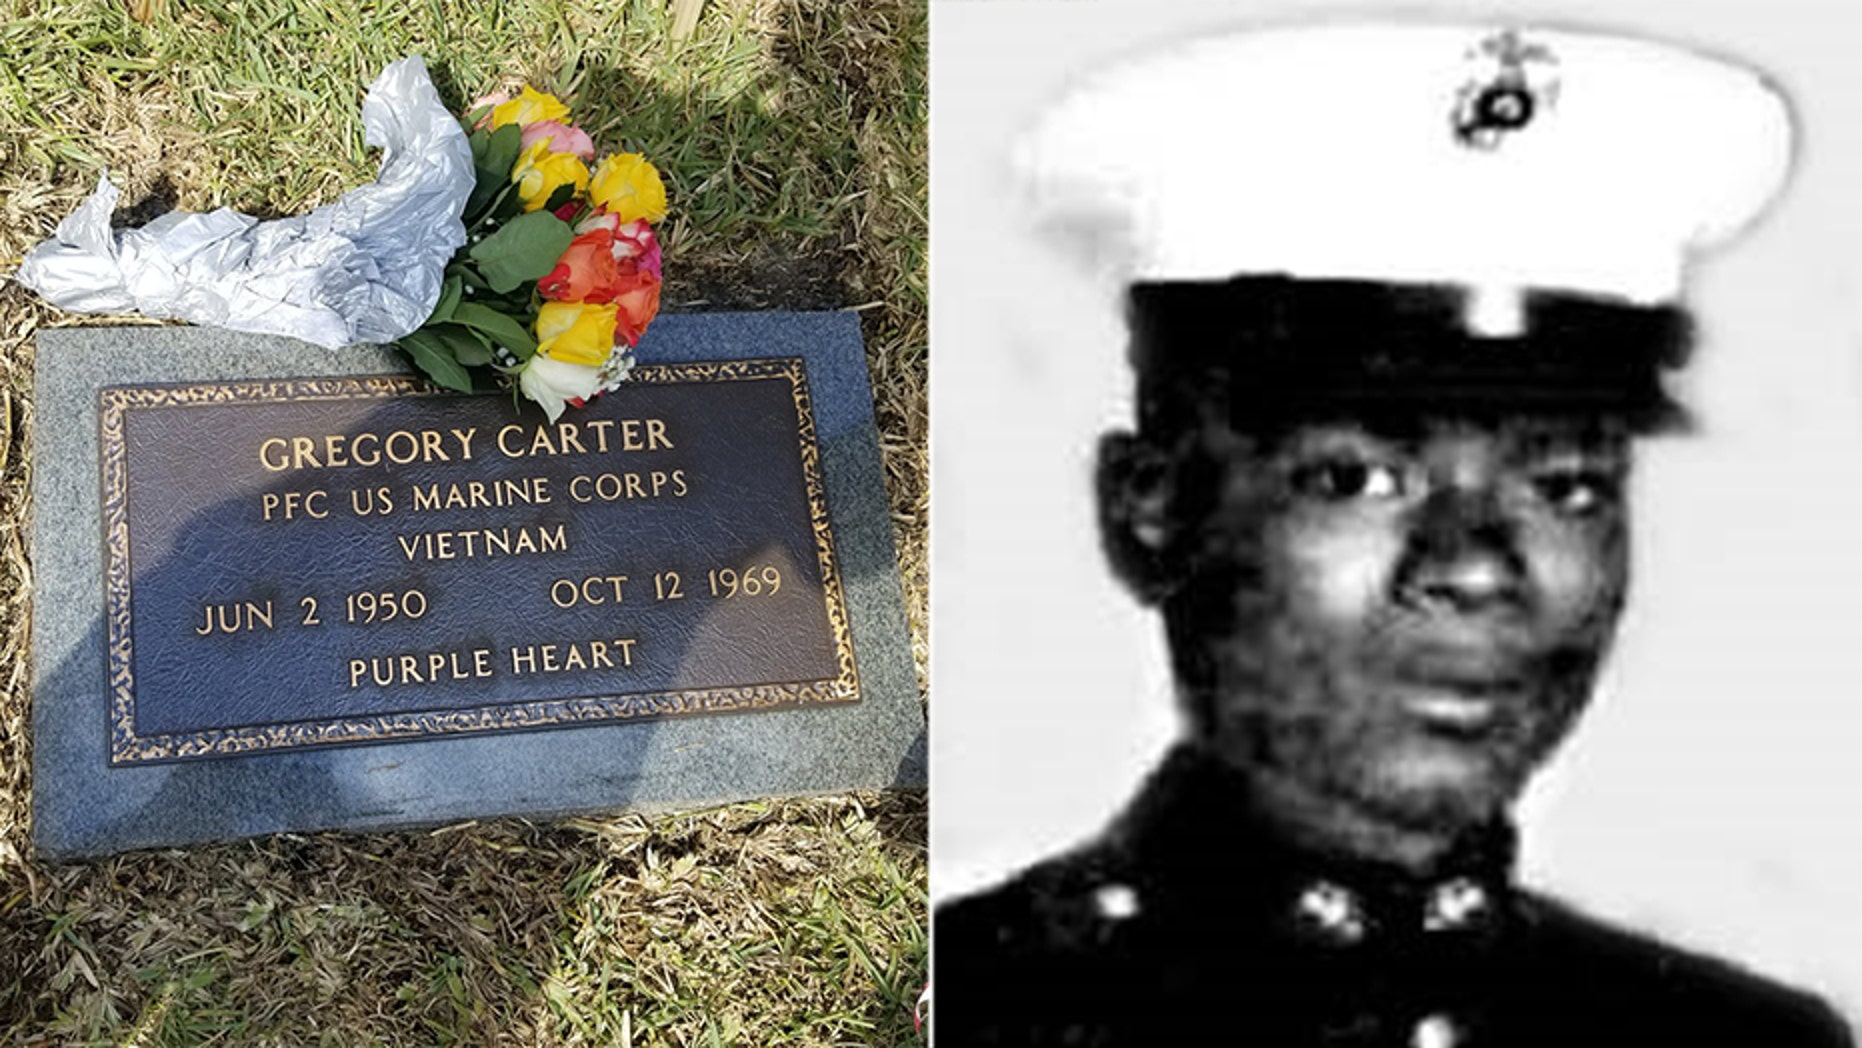 Fort Lauderdale dedicated a bronze grave marker Saturday for native son Gregory Carter who was killed in action in Vietnam after joining the Marines and whose burial spot was unmarked for 50 years.